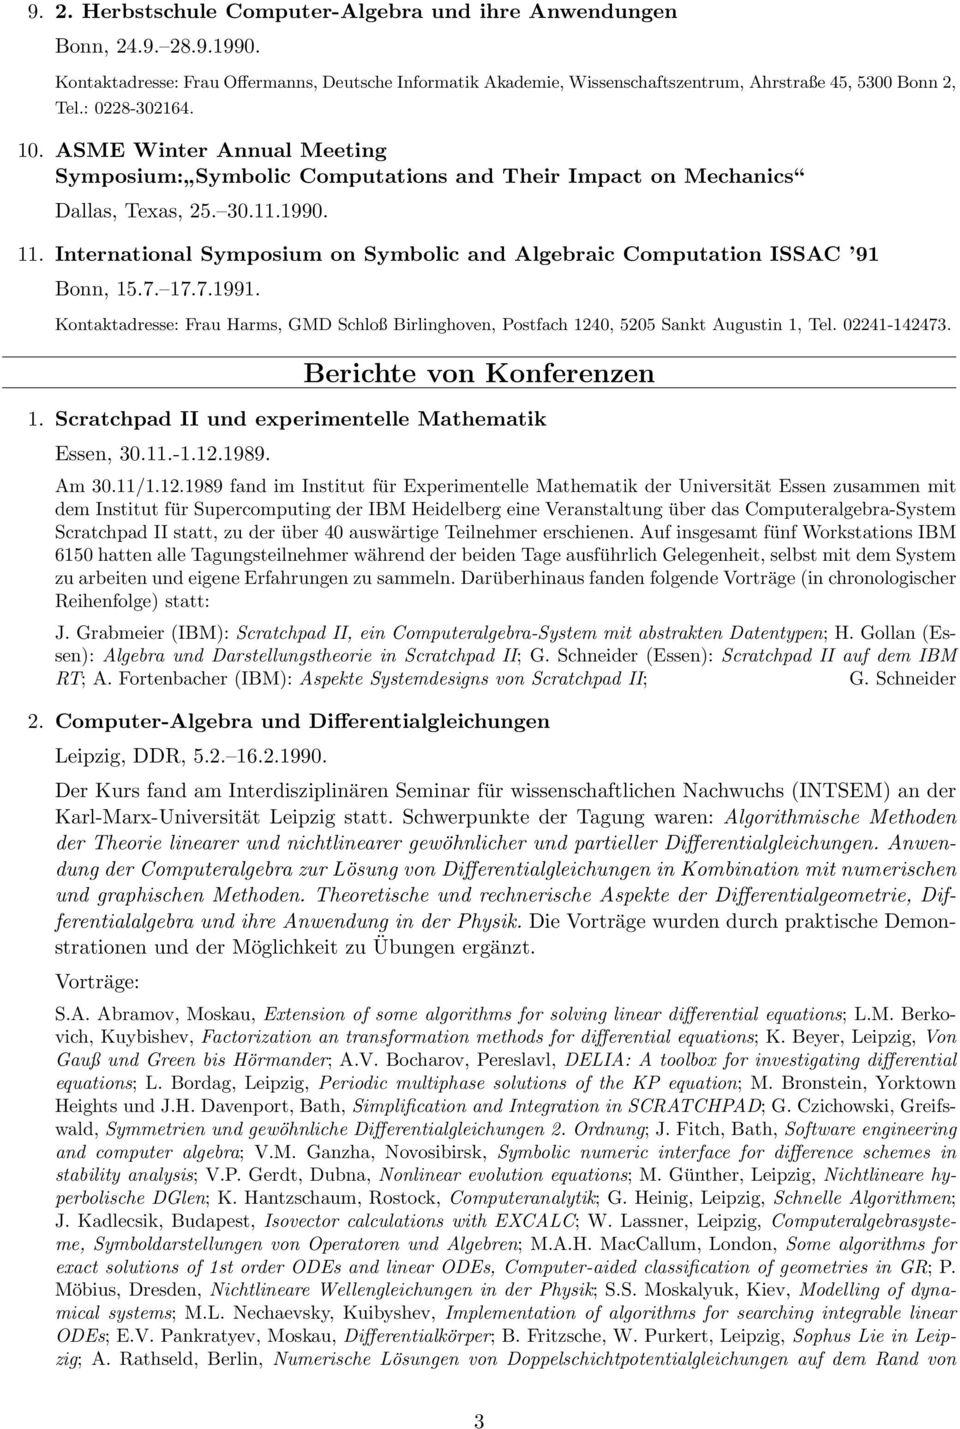 International Symposium on Symbolic and Algebraic Computation ISSAC 91 Bonn, 15.7. 17.7.1991. Kontaktadresse: Frau Harms, GMD Schloß Birlinghoven, Postfach 1240, 5205 Sankt Augustin 1, Tel.